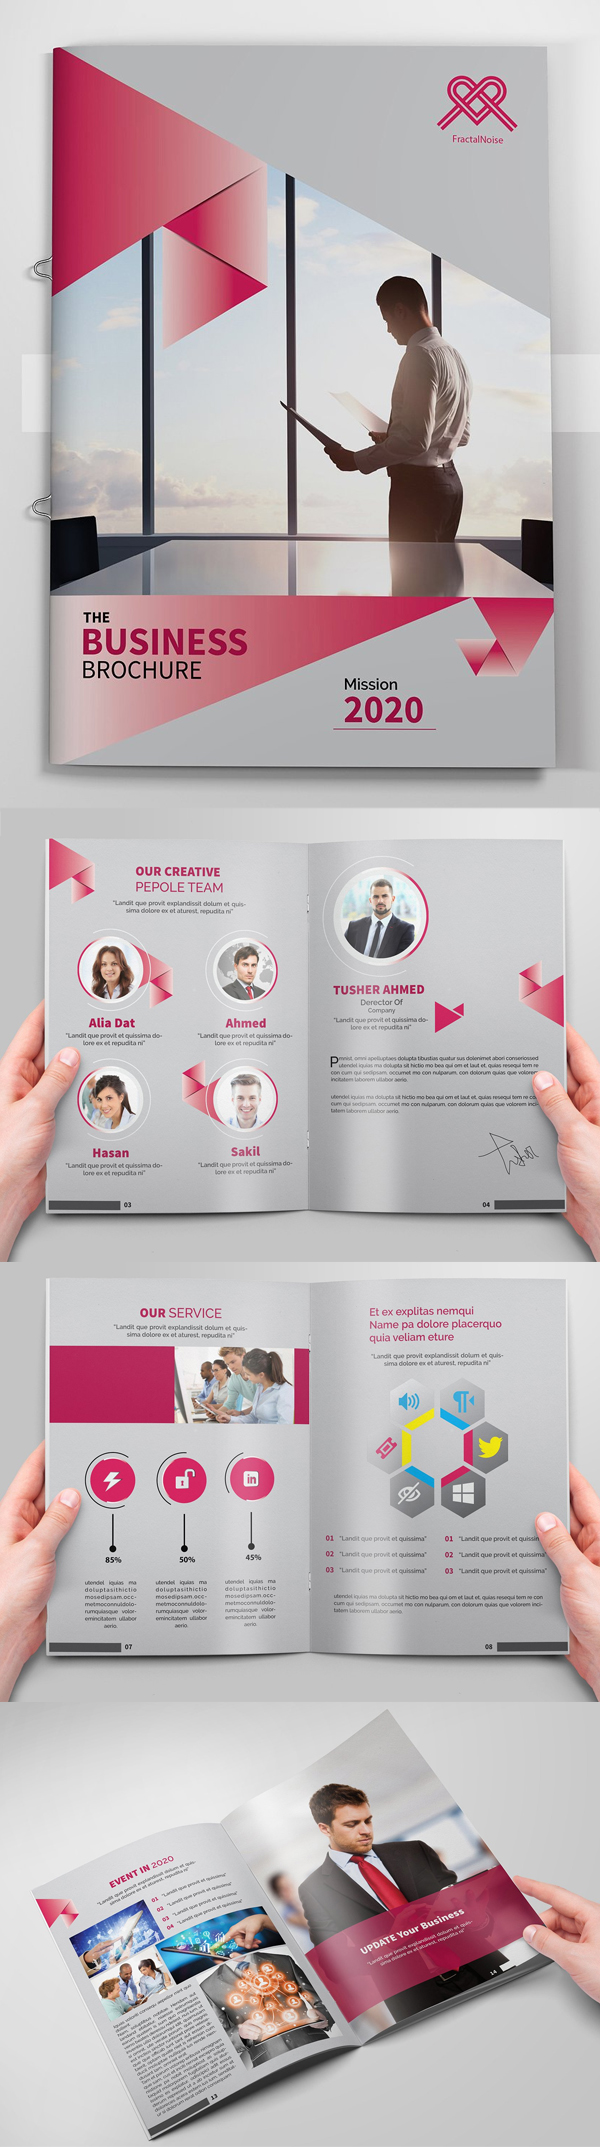 Corporative Business Brochures Template